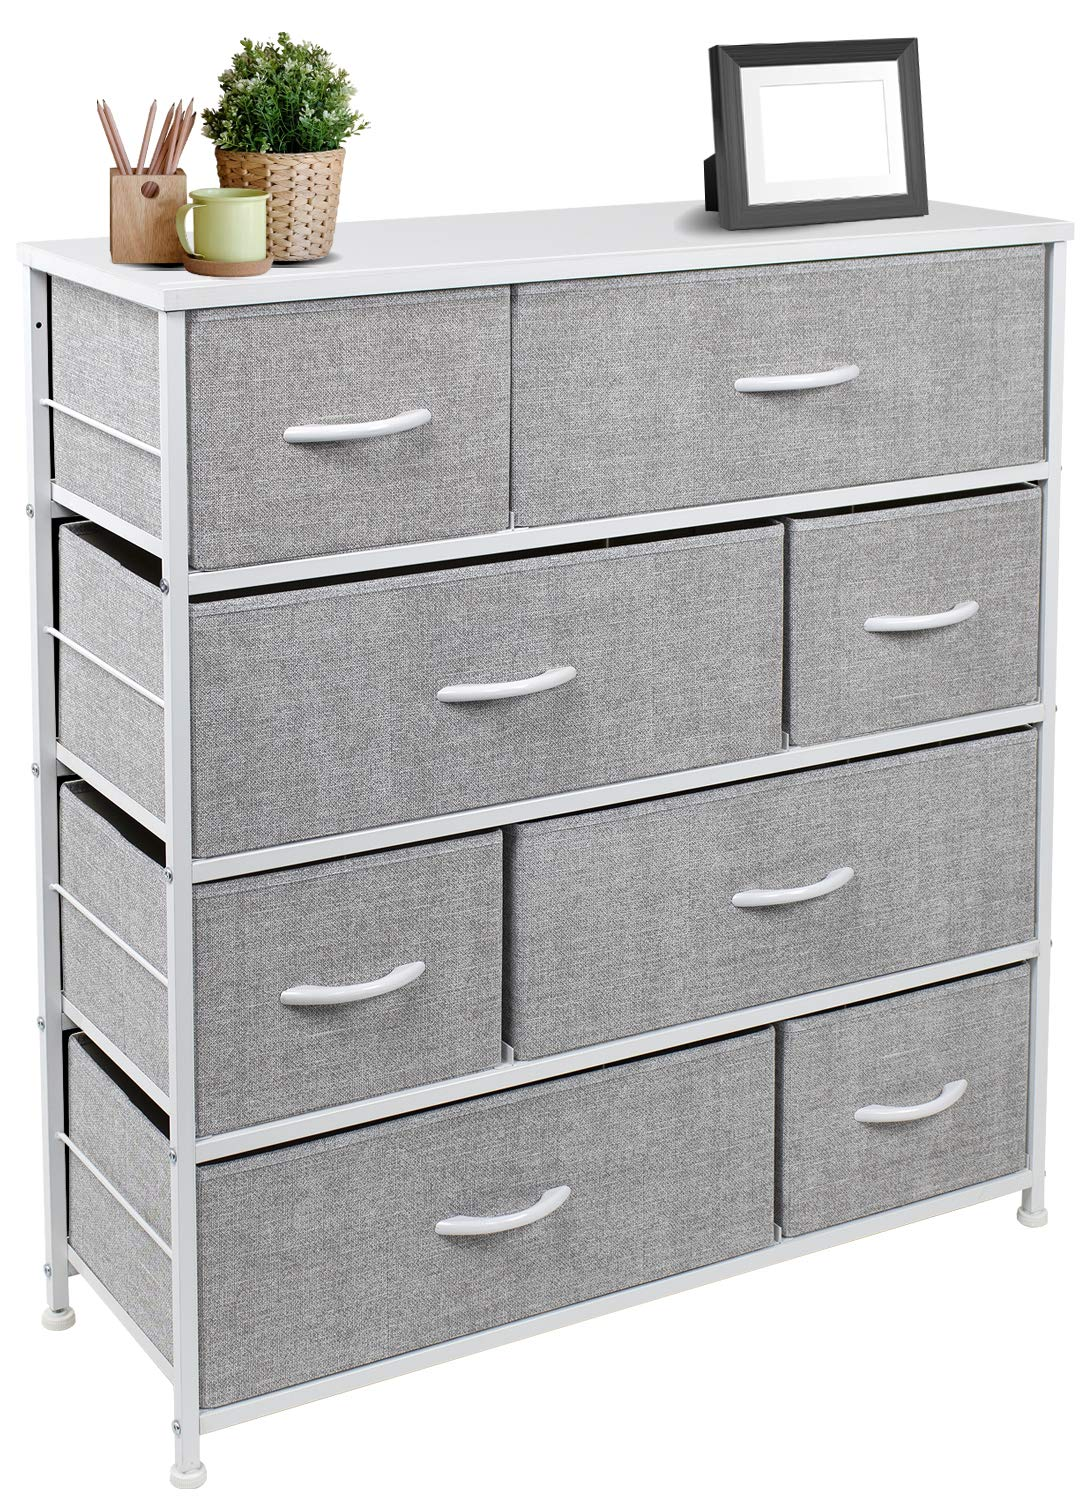 Sorbus Dresser with 8 Drawers - Furniture Storage Chest Tower Unit for Bedroom, Hallway, Closet, Office Organization - Steel Frame, Wood Top, Easy Pull Fabric Bins (White)